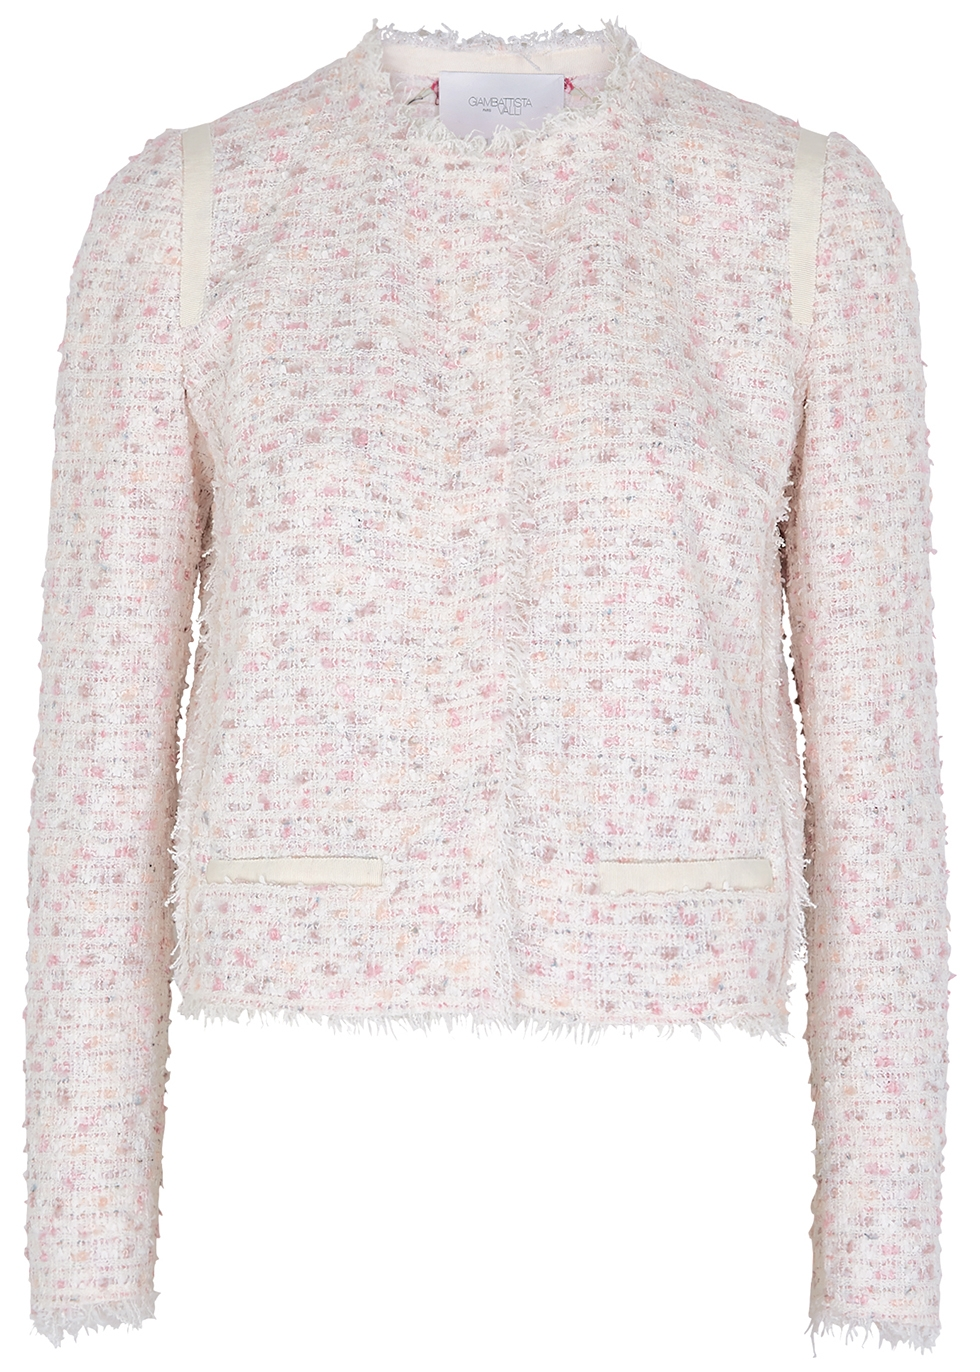 Ivory and pink bouclé tweed jacket